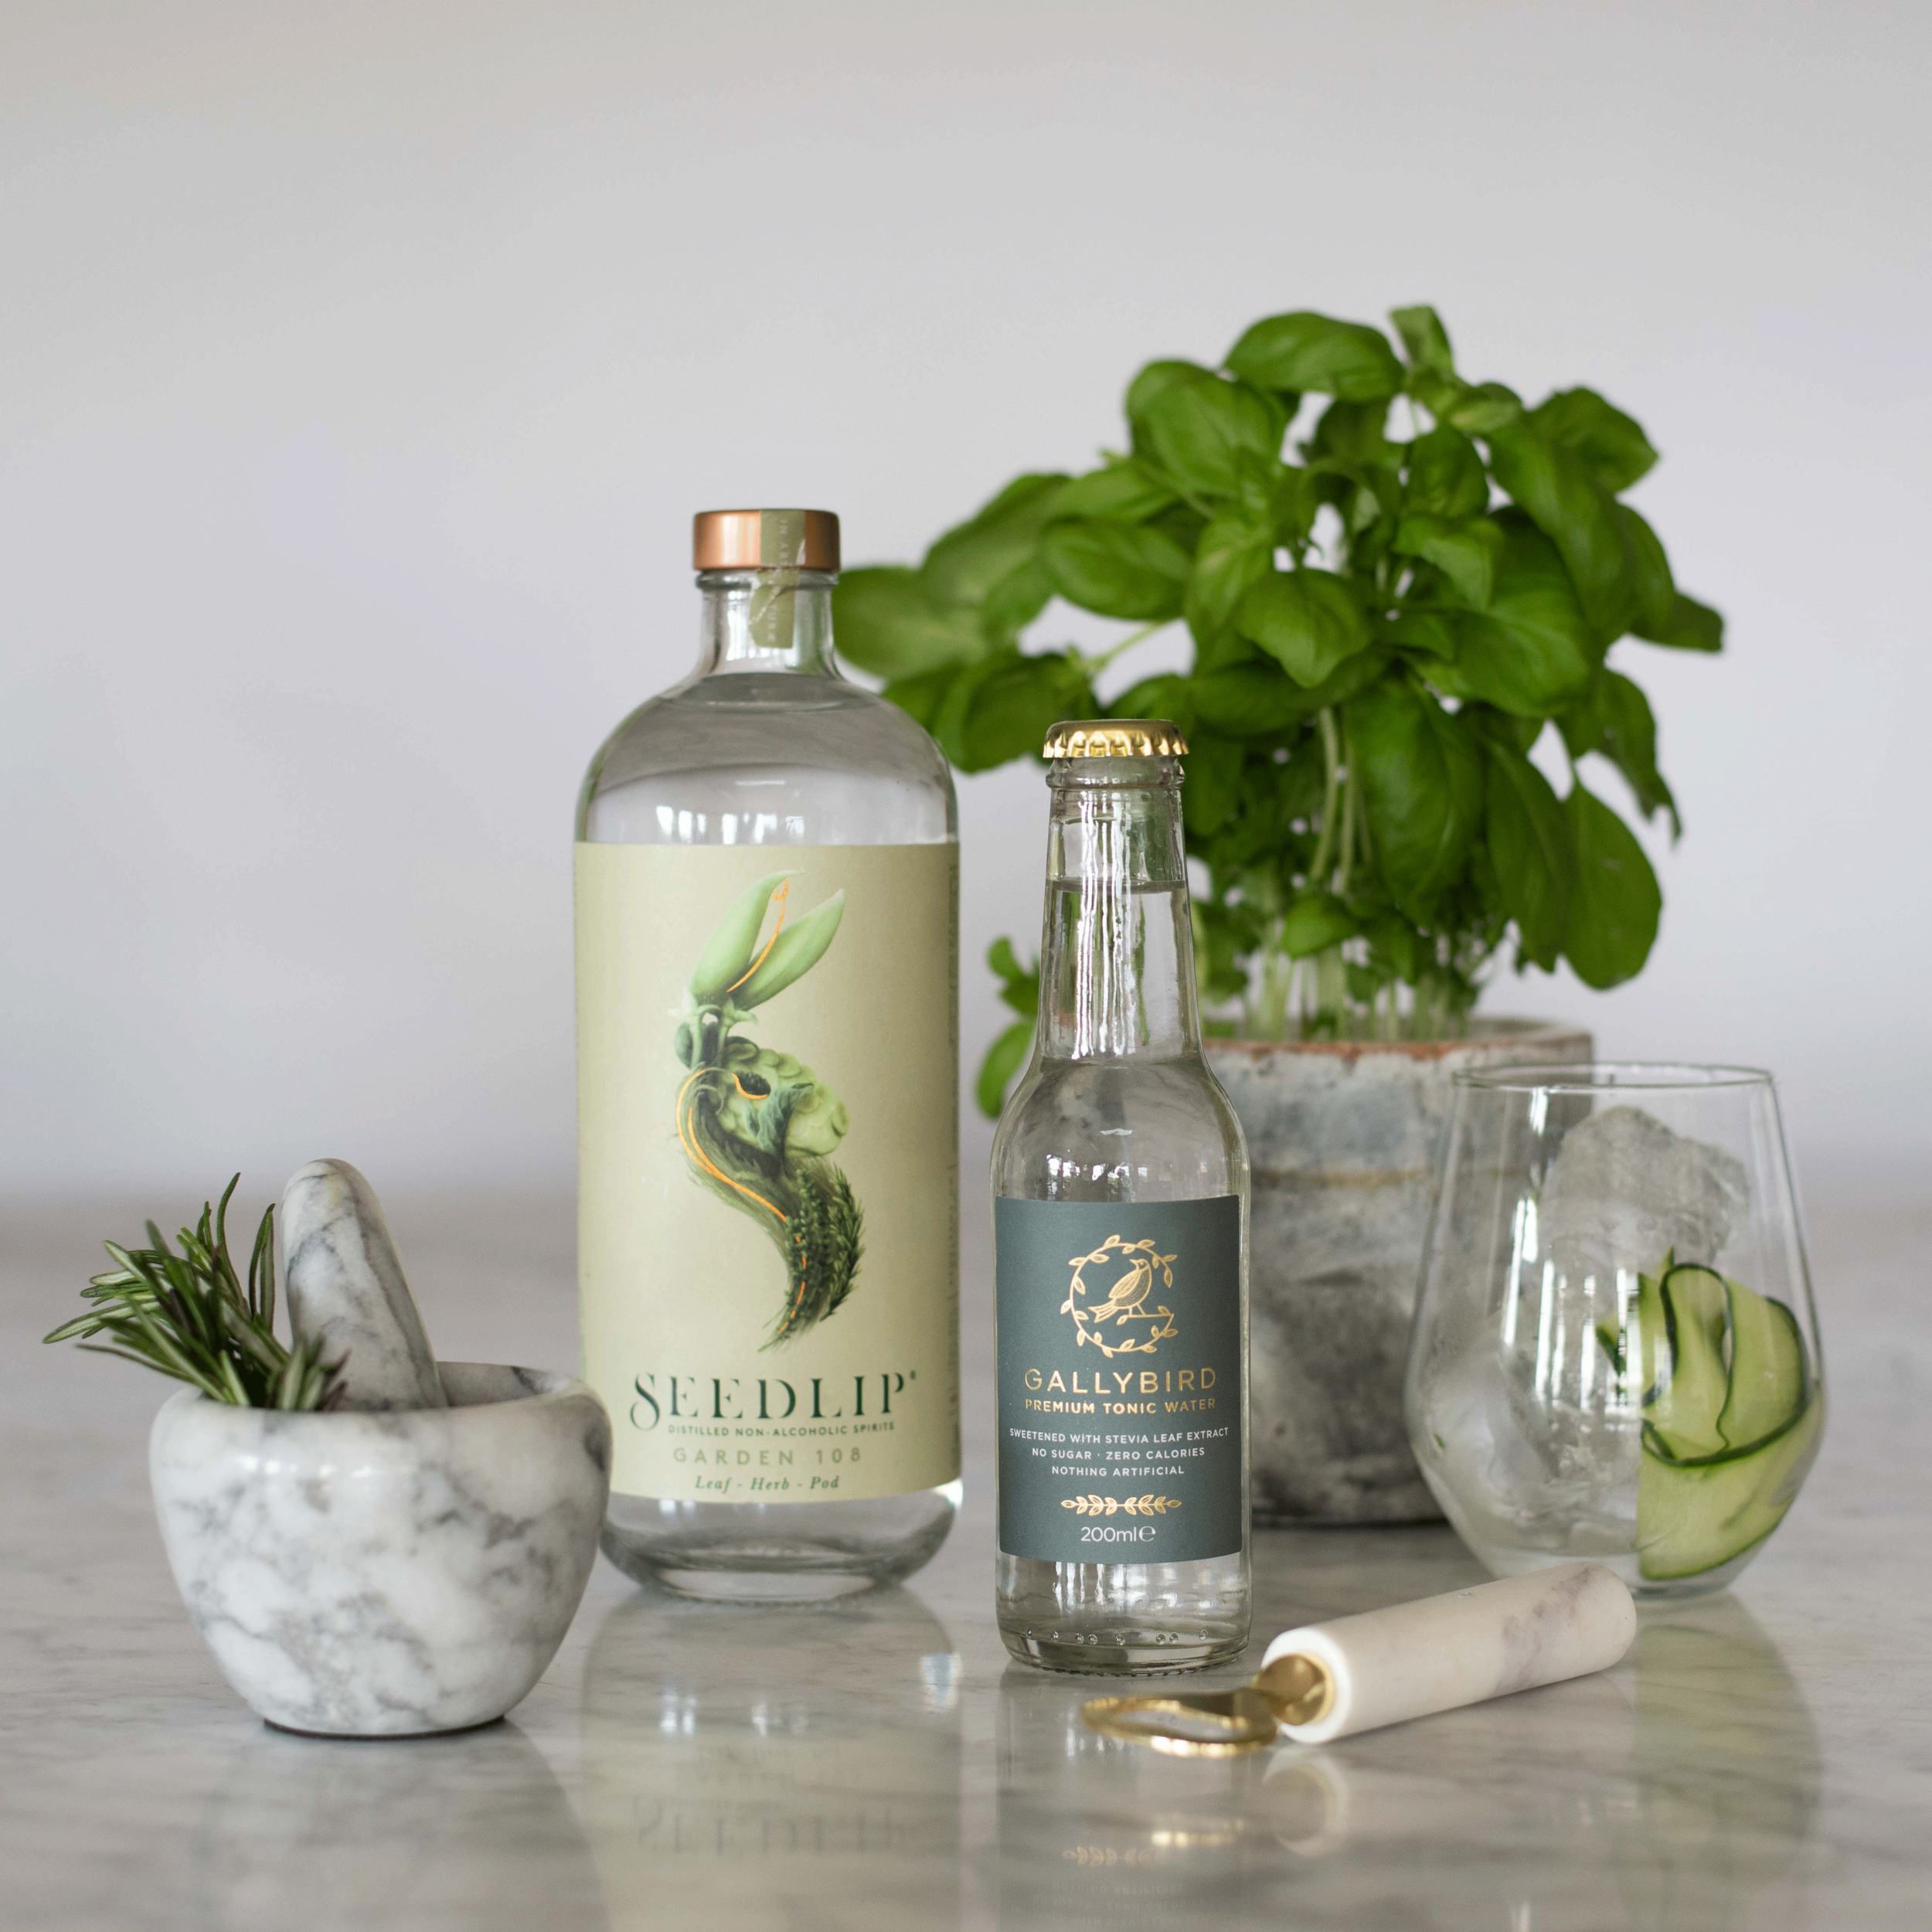 Gallybird and Seedlip - Our suggested non alcoholic spirit of choice. Pour a healthy measure of Seedlip garden 108 over lots of ice, add Gallybird and a ribbon of cucumber plus a leaf or two of basil. This is what to drink when you're not drinking! Lean, clean and a green cocktail with no sugar and zero Calories.